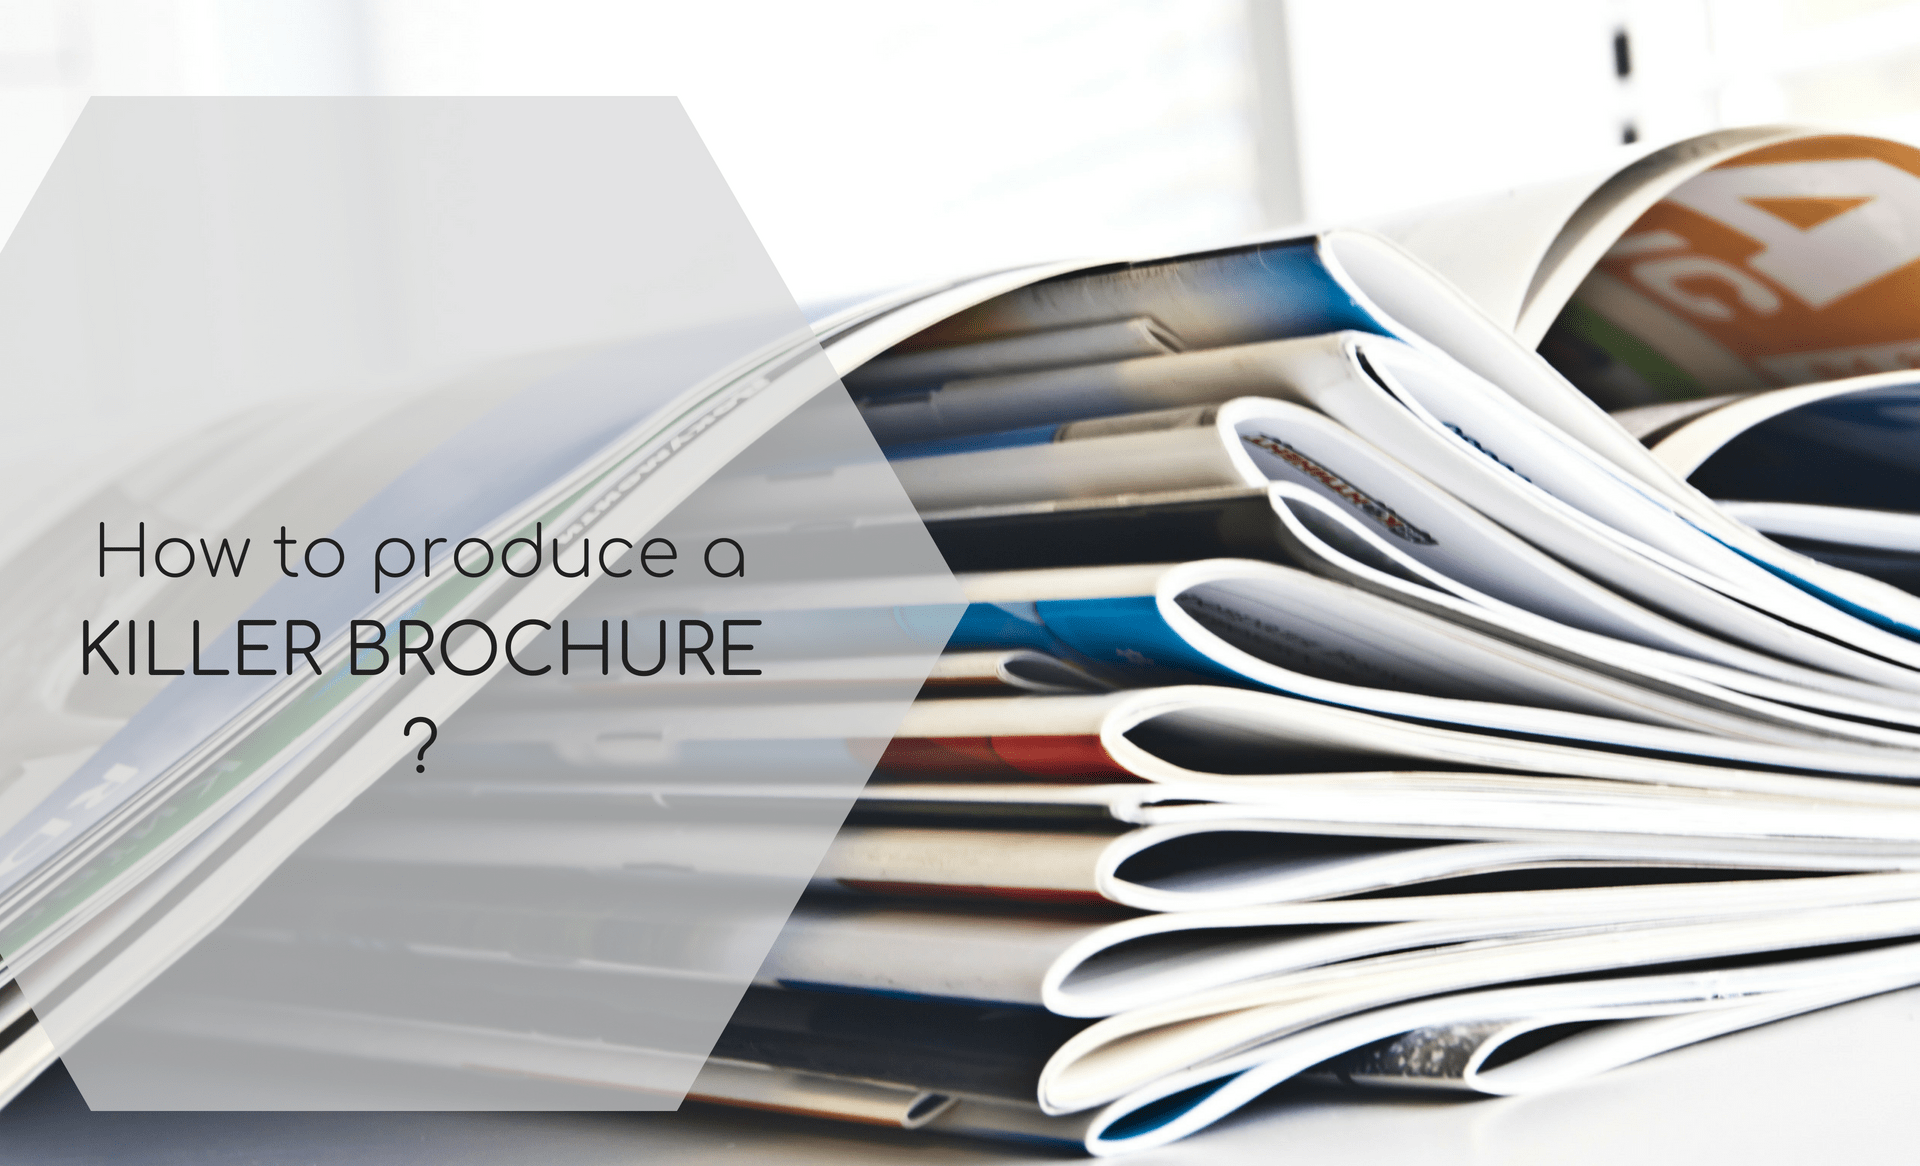 How to produce a KILLER BROCHURE